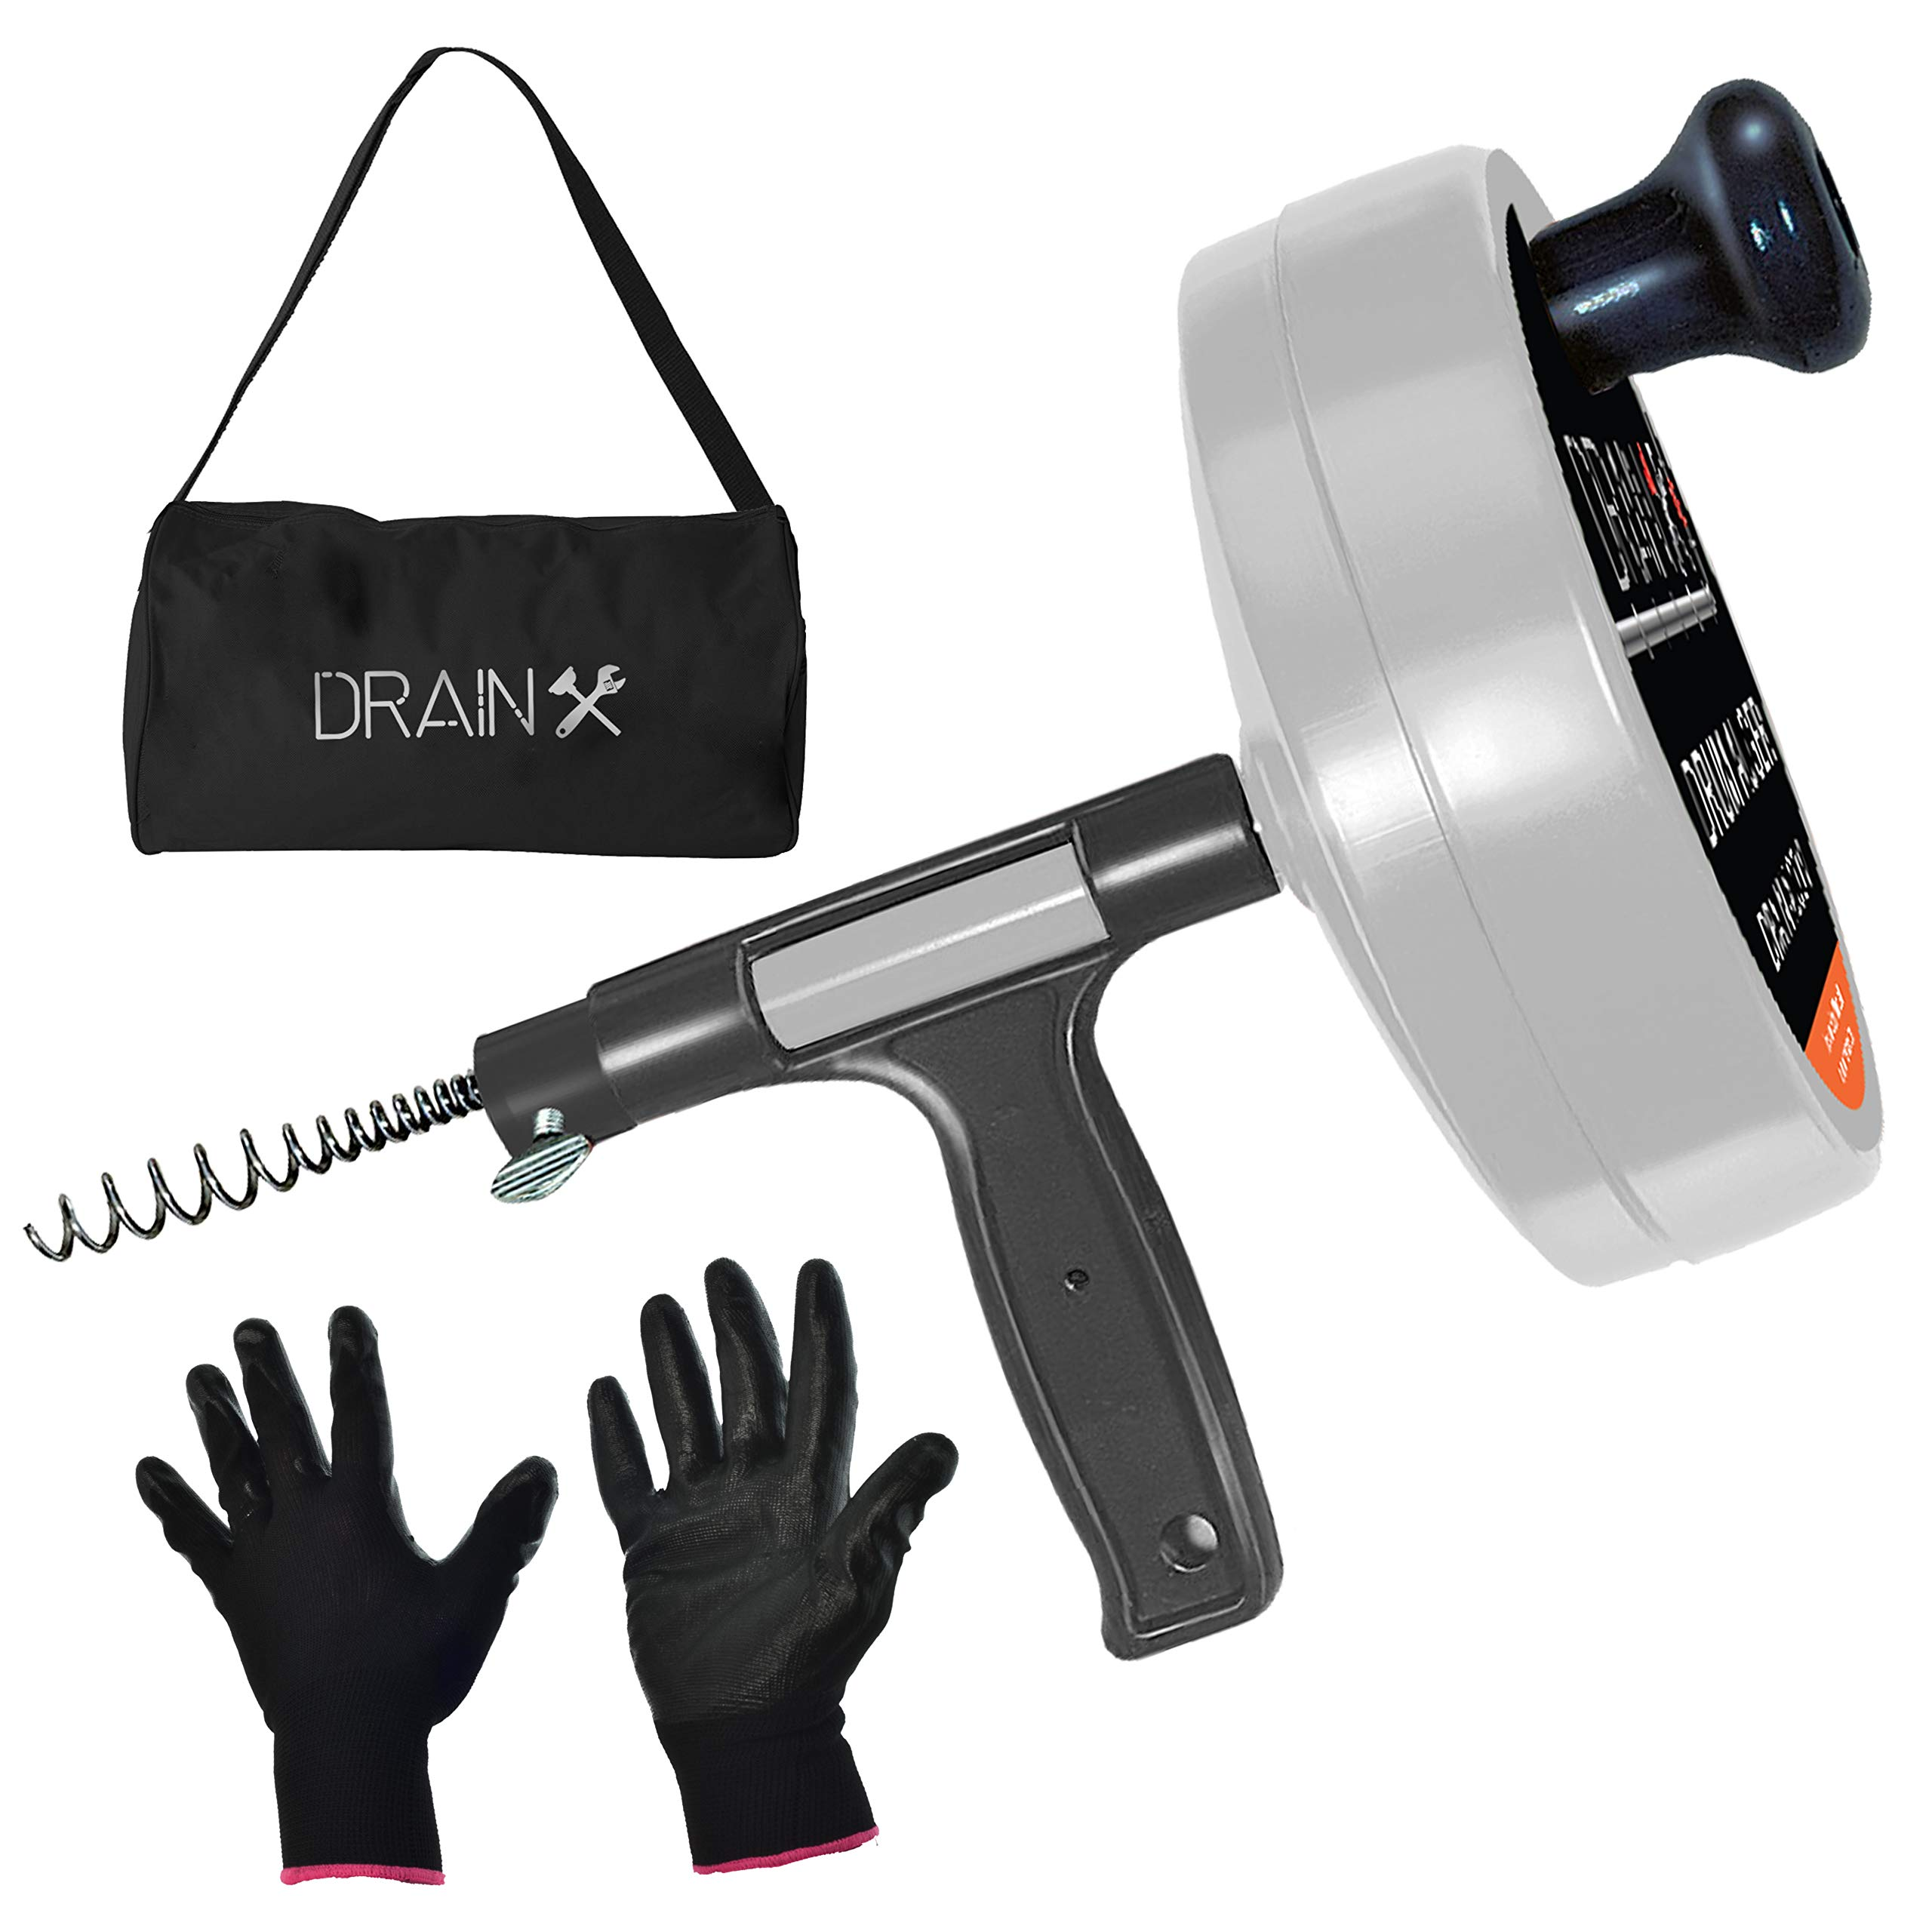 Drainx Pro 50-FT Steel Drum Auger Plumbing Snake with Work Gloves and Storage Bag by DrainX